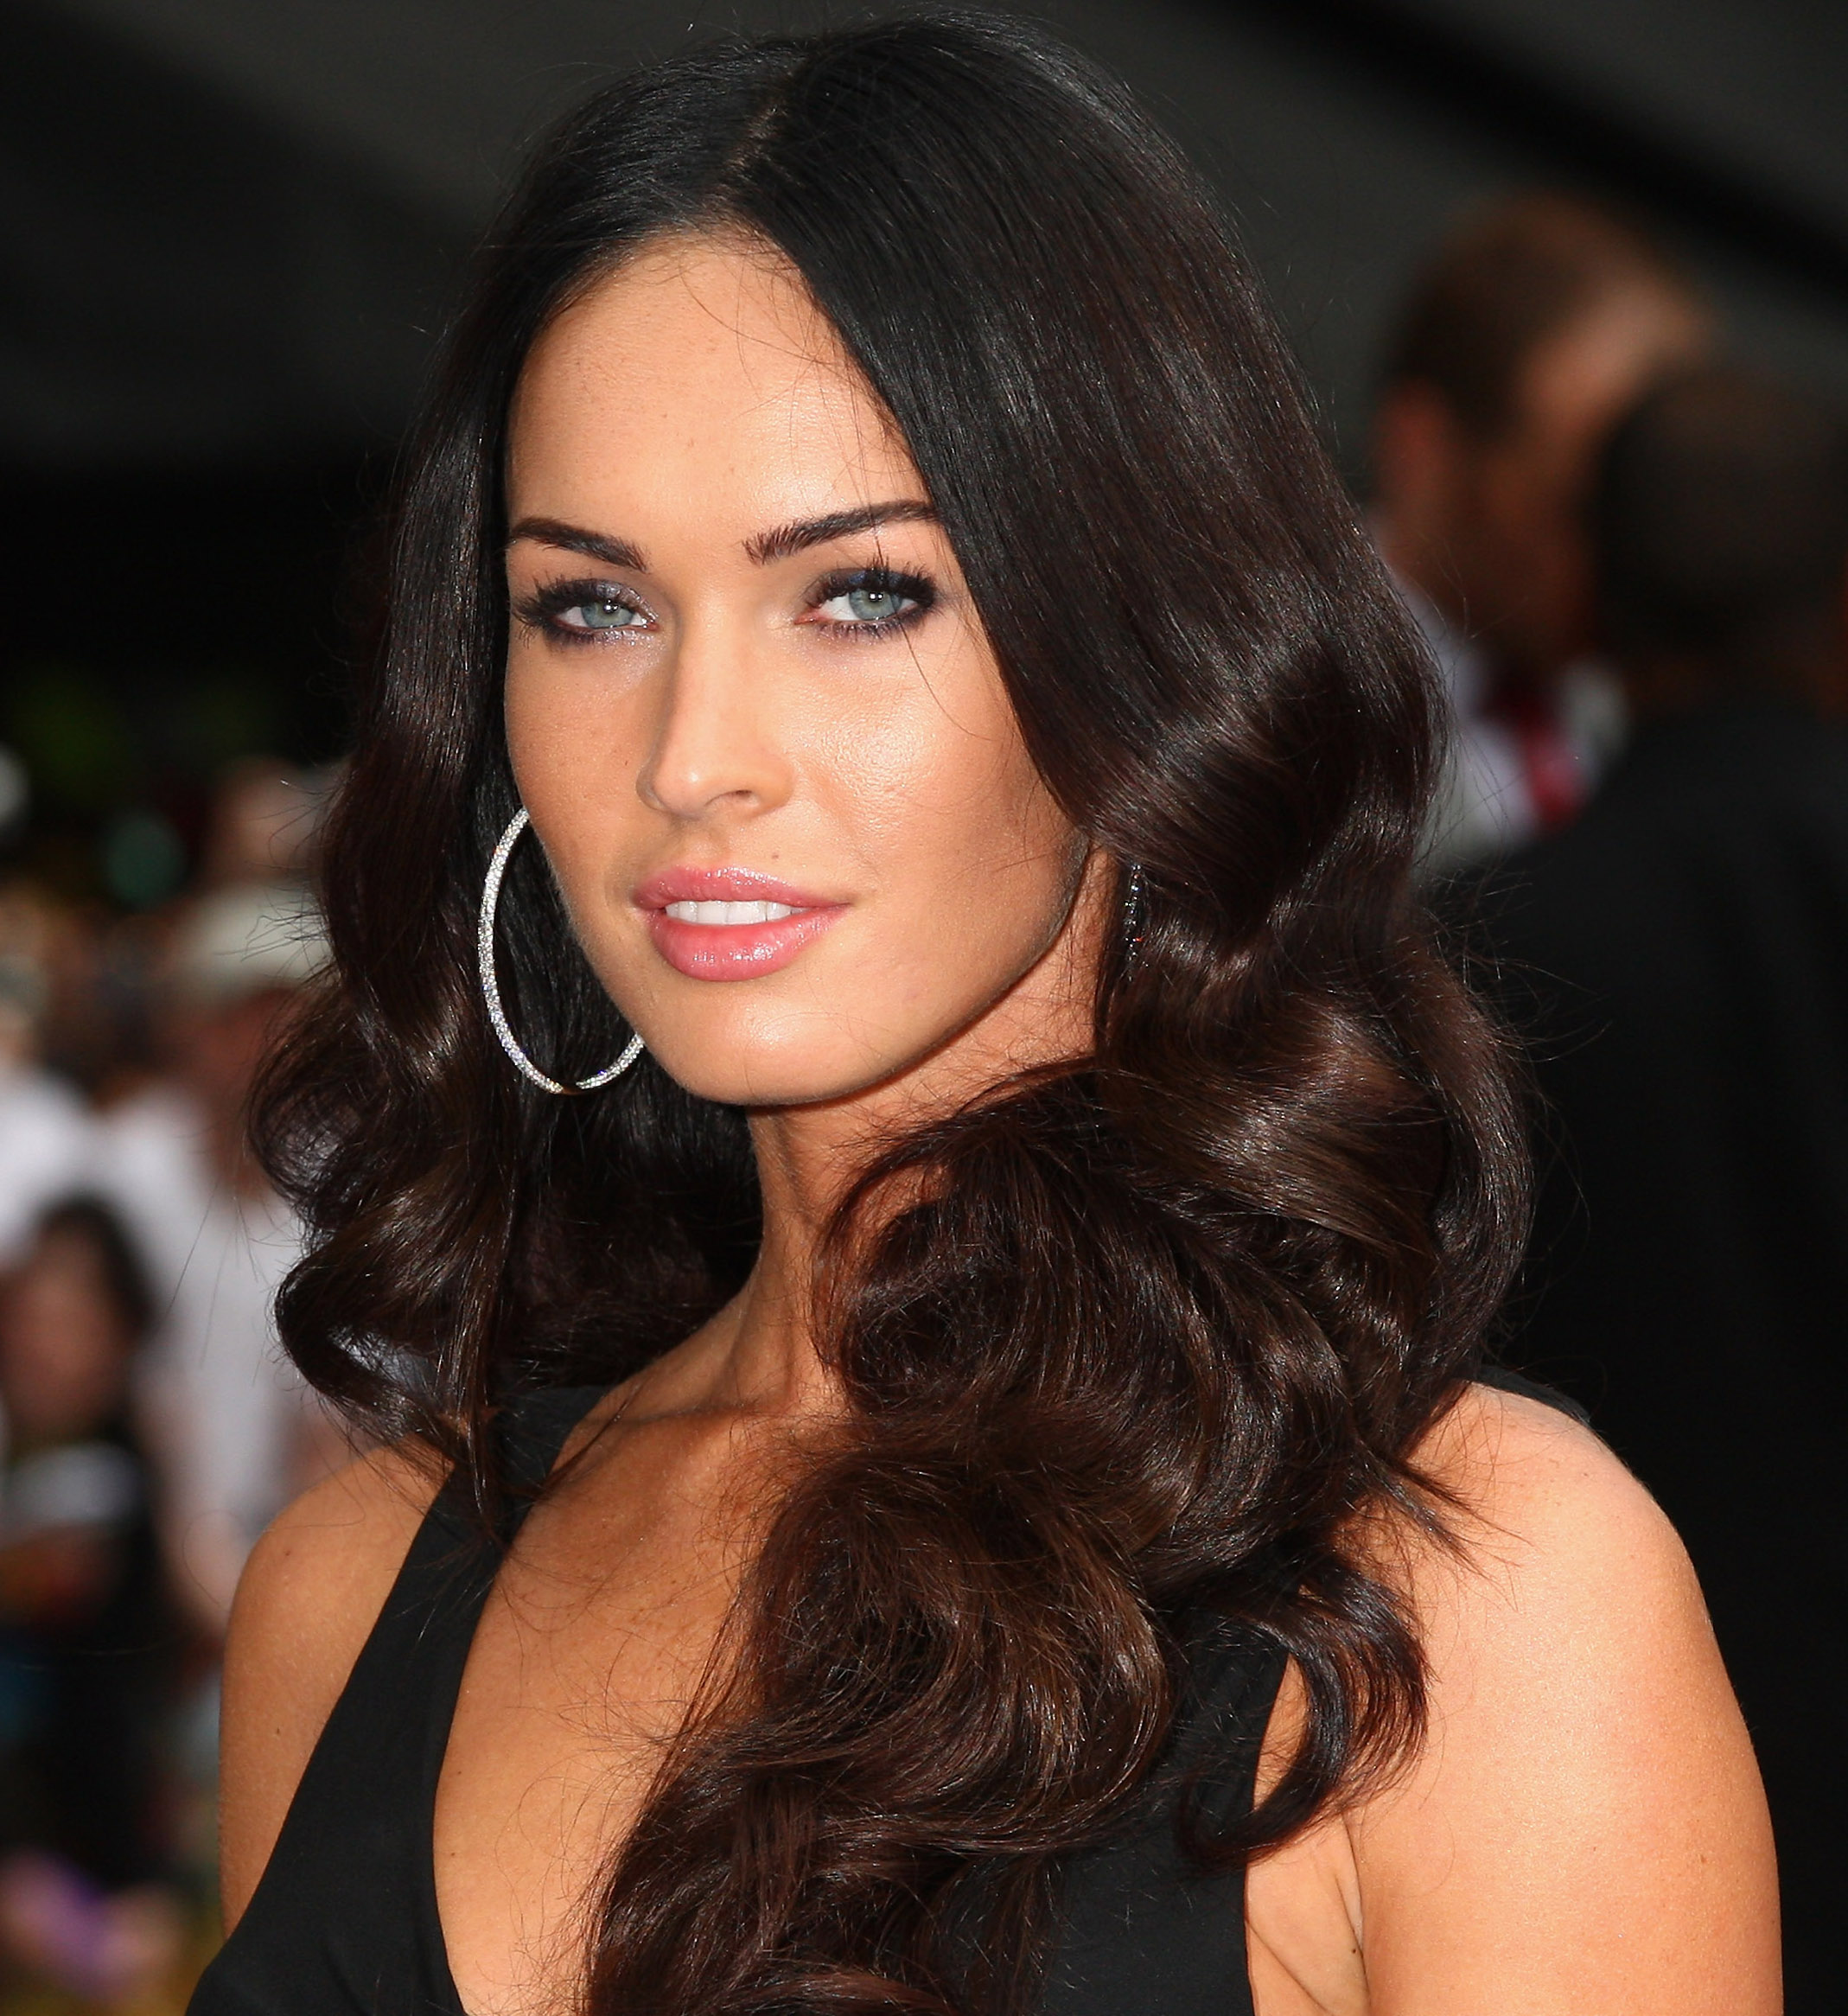 megan fox, megan fox photos, hot celebrity women